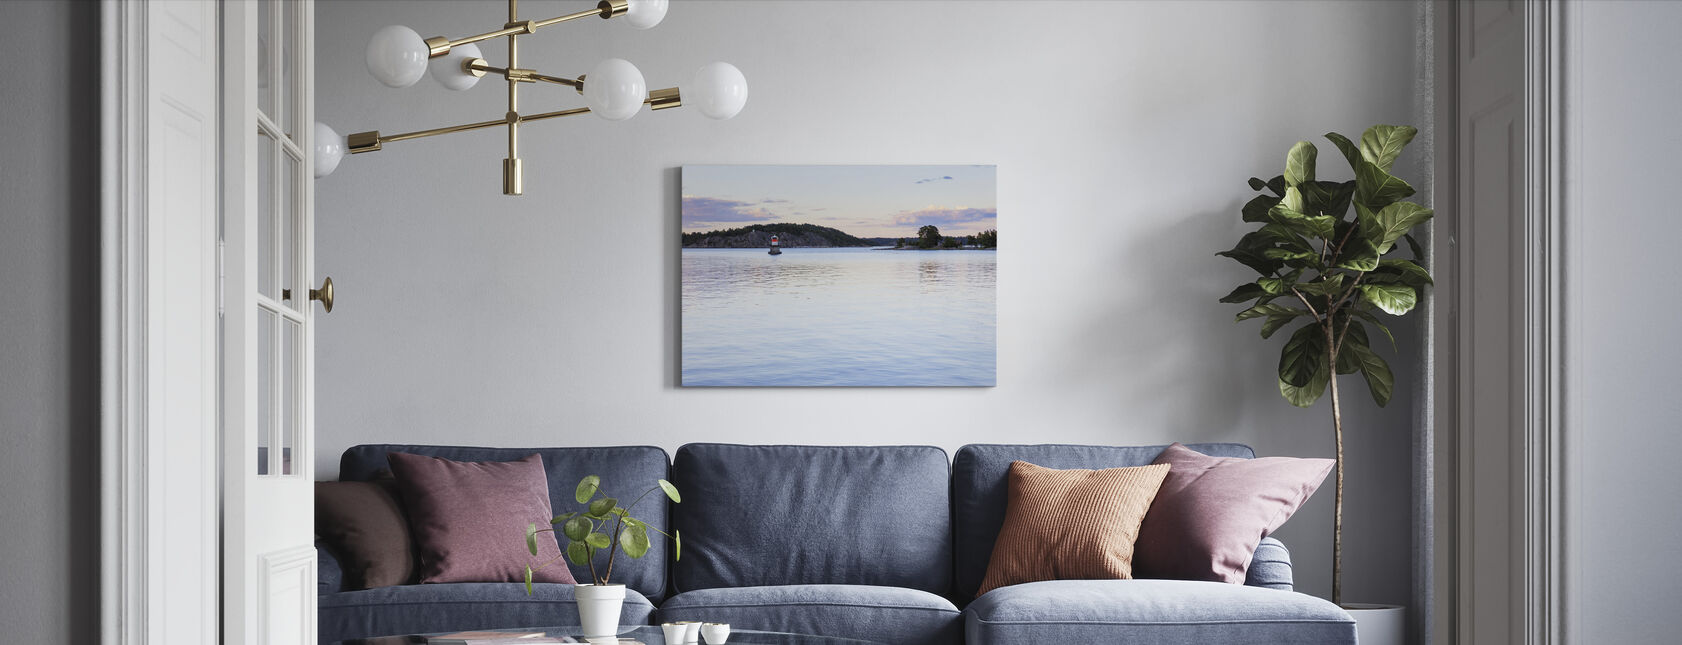 Korsholmen, Dalarö - Canvas print - Living Room